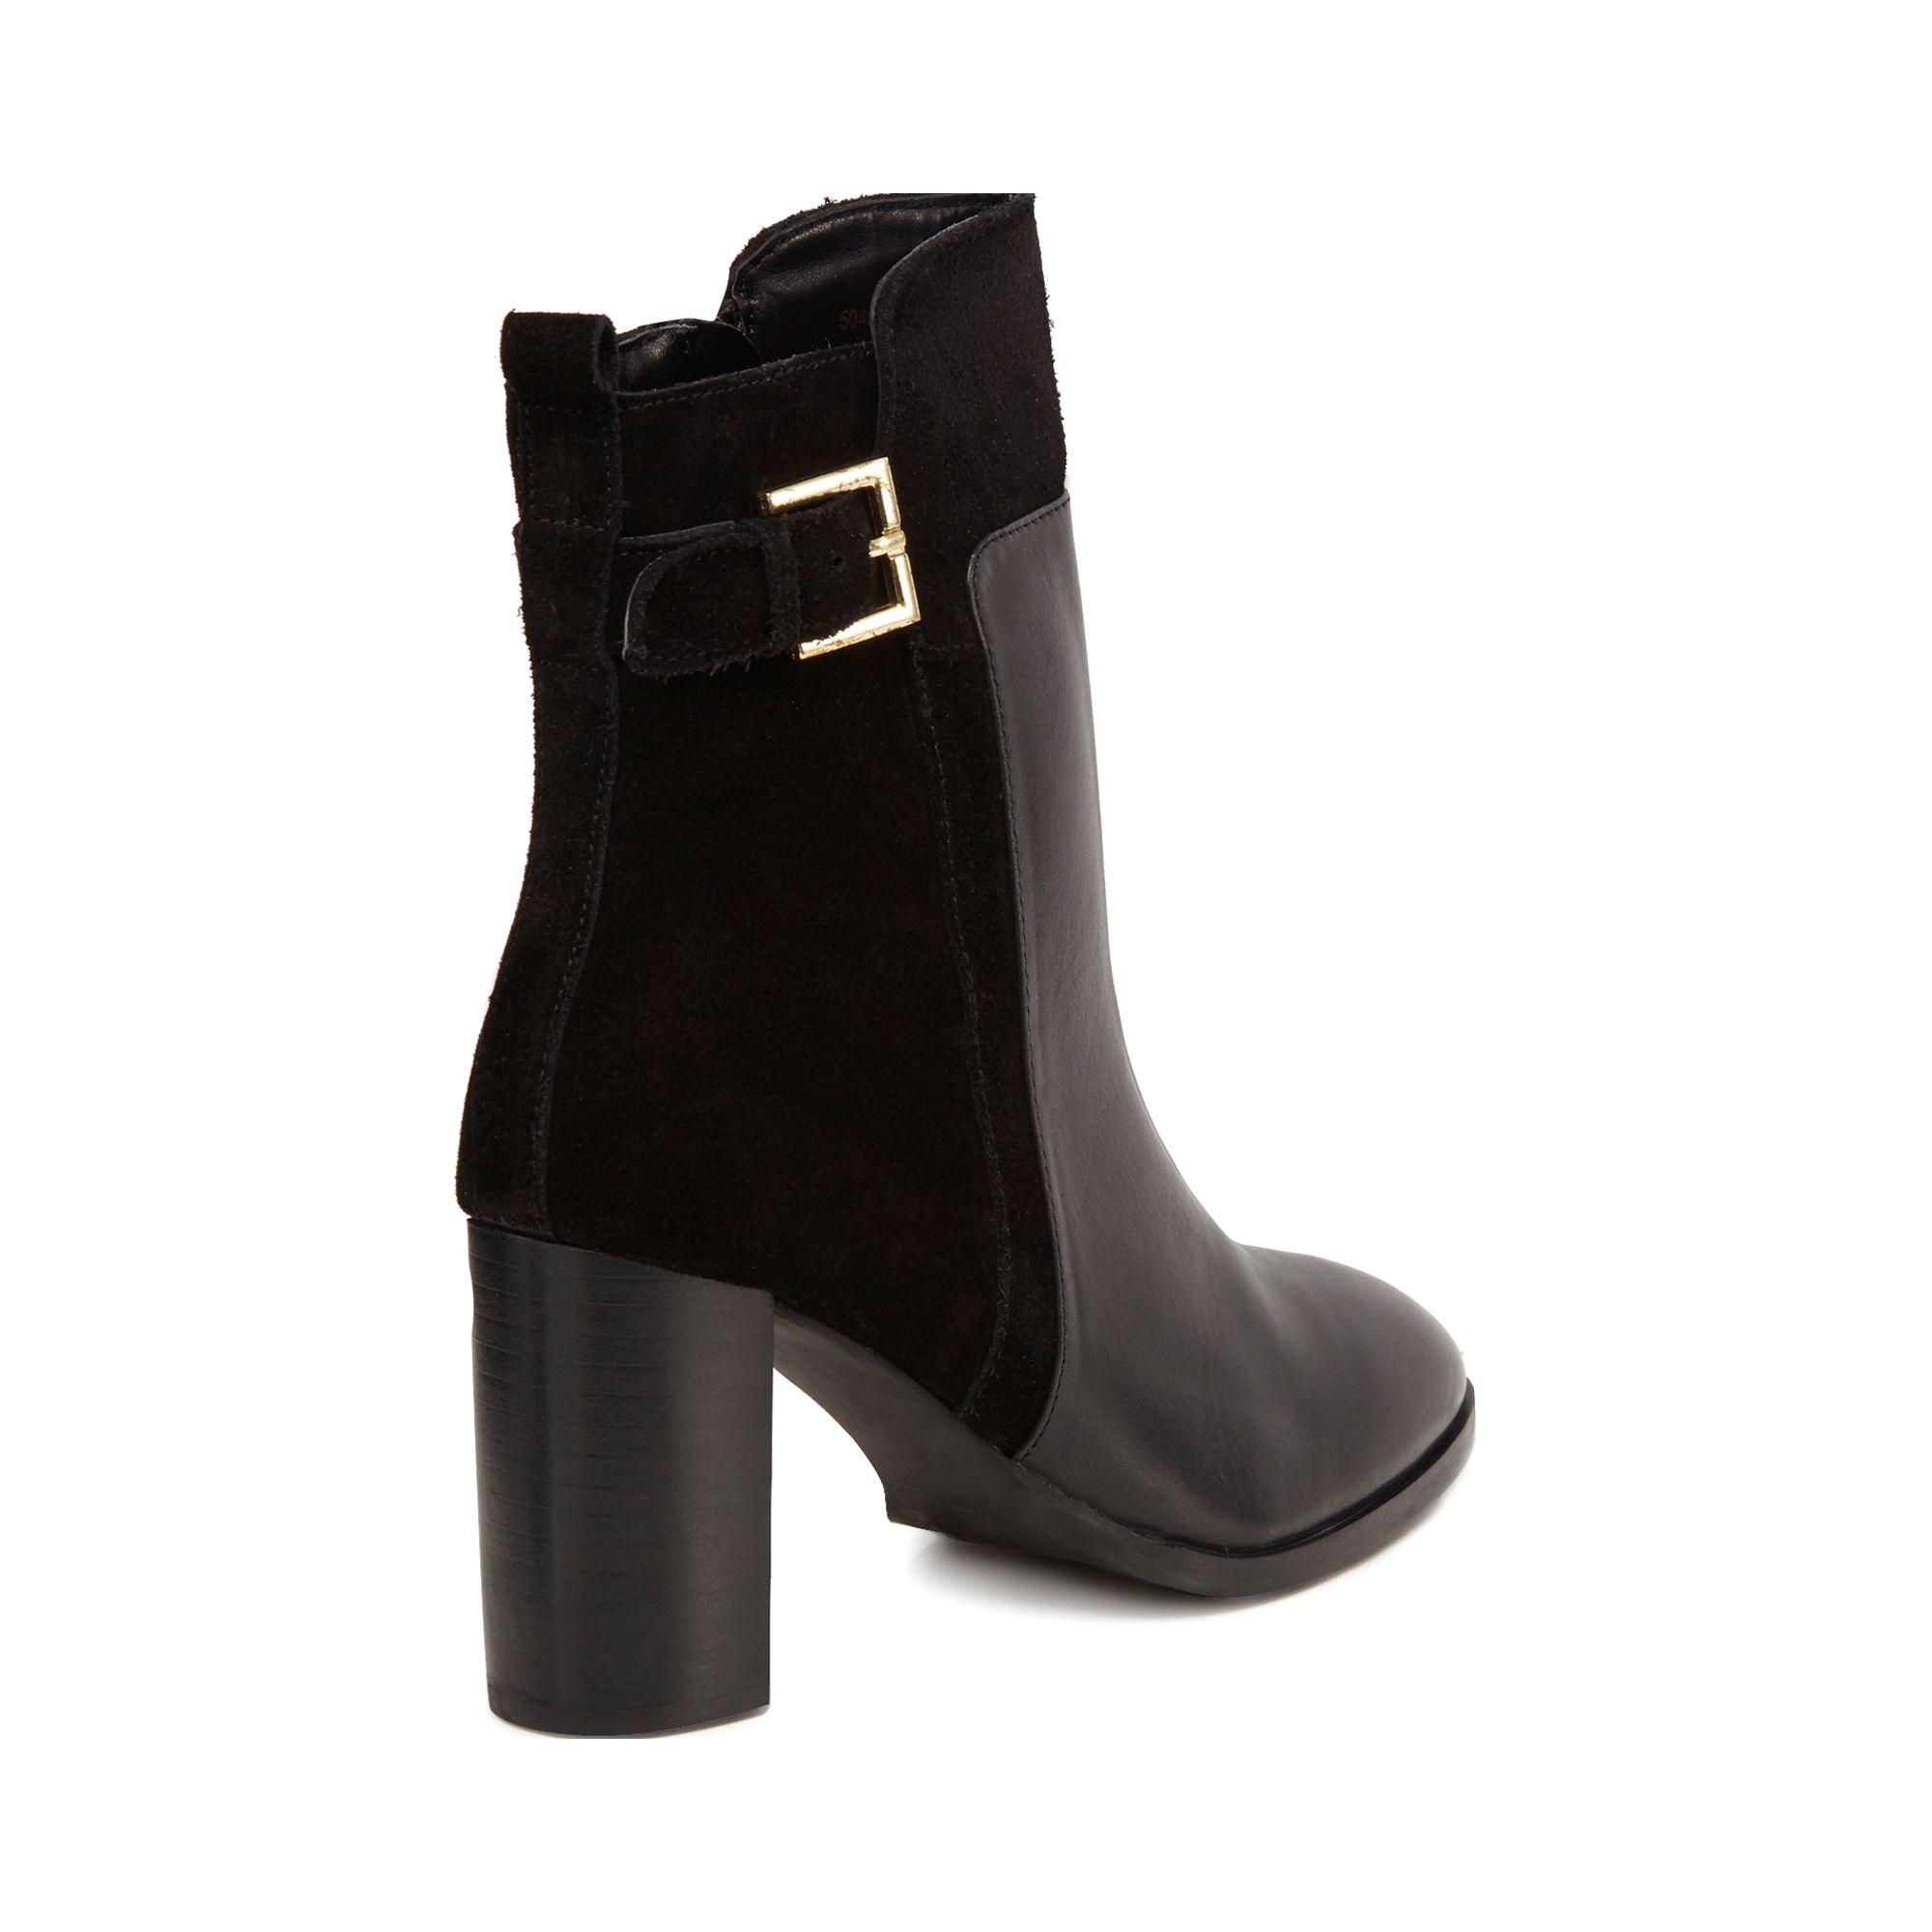 a60c400849c J By Jasper Conran Black Leather 'jalen' High Block Heel Ankle Boots ...